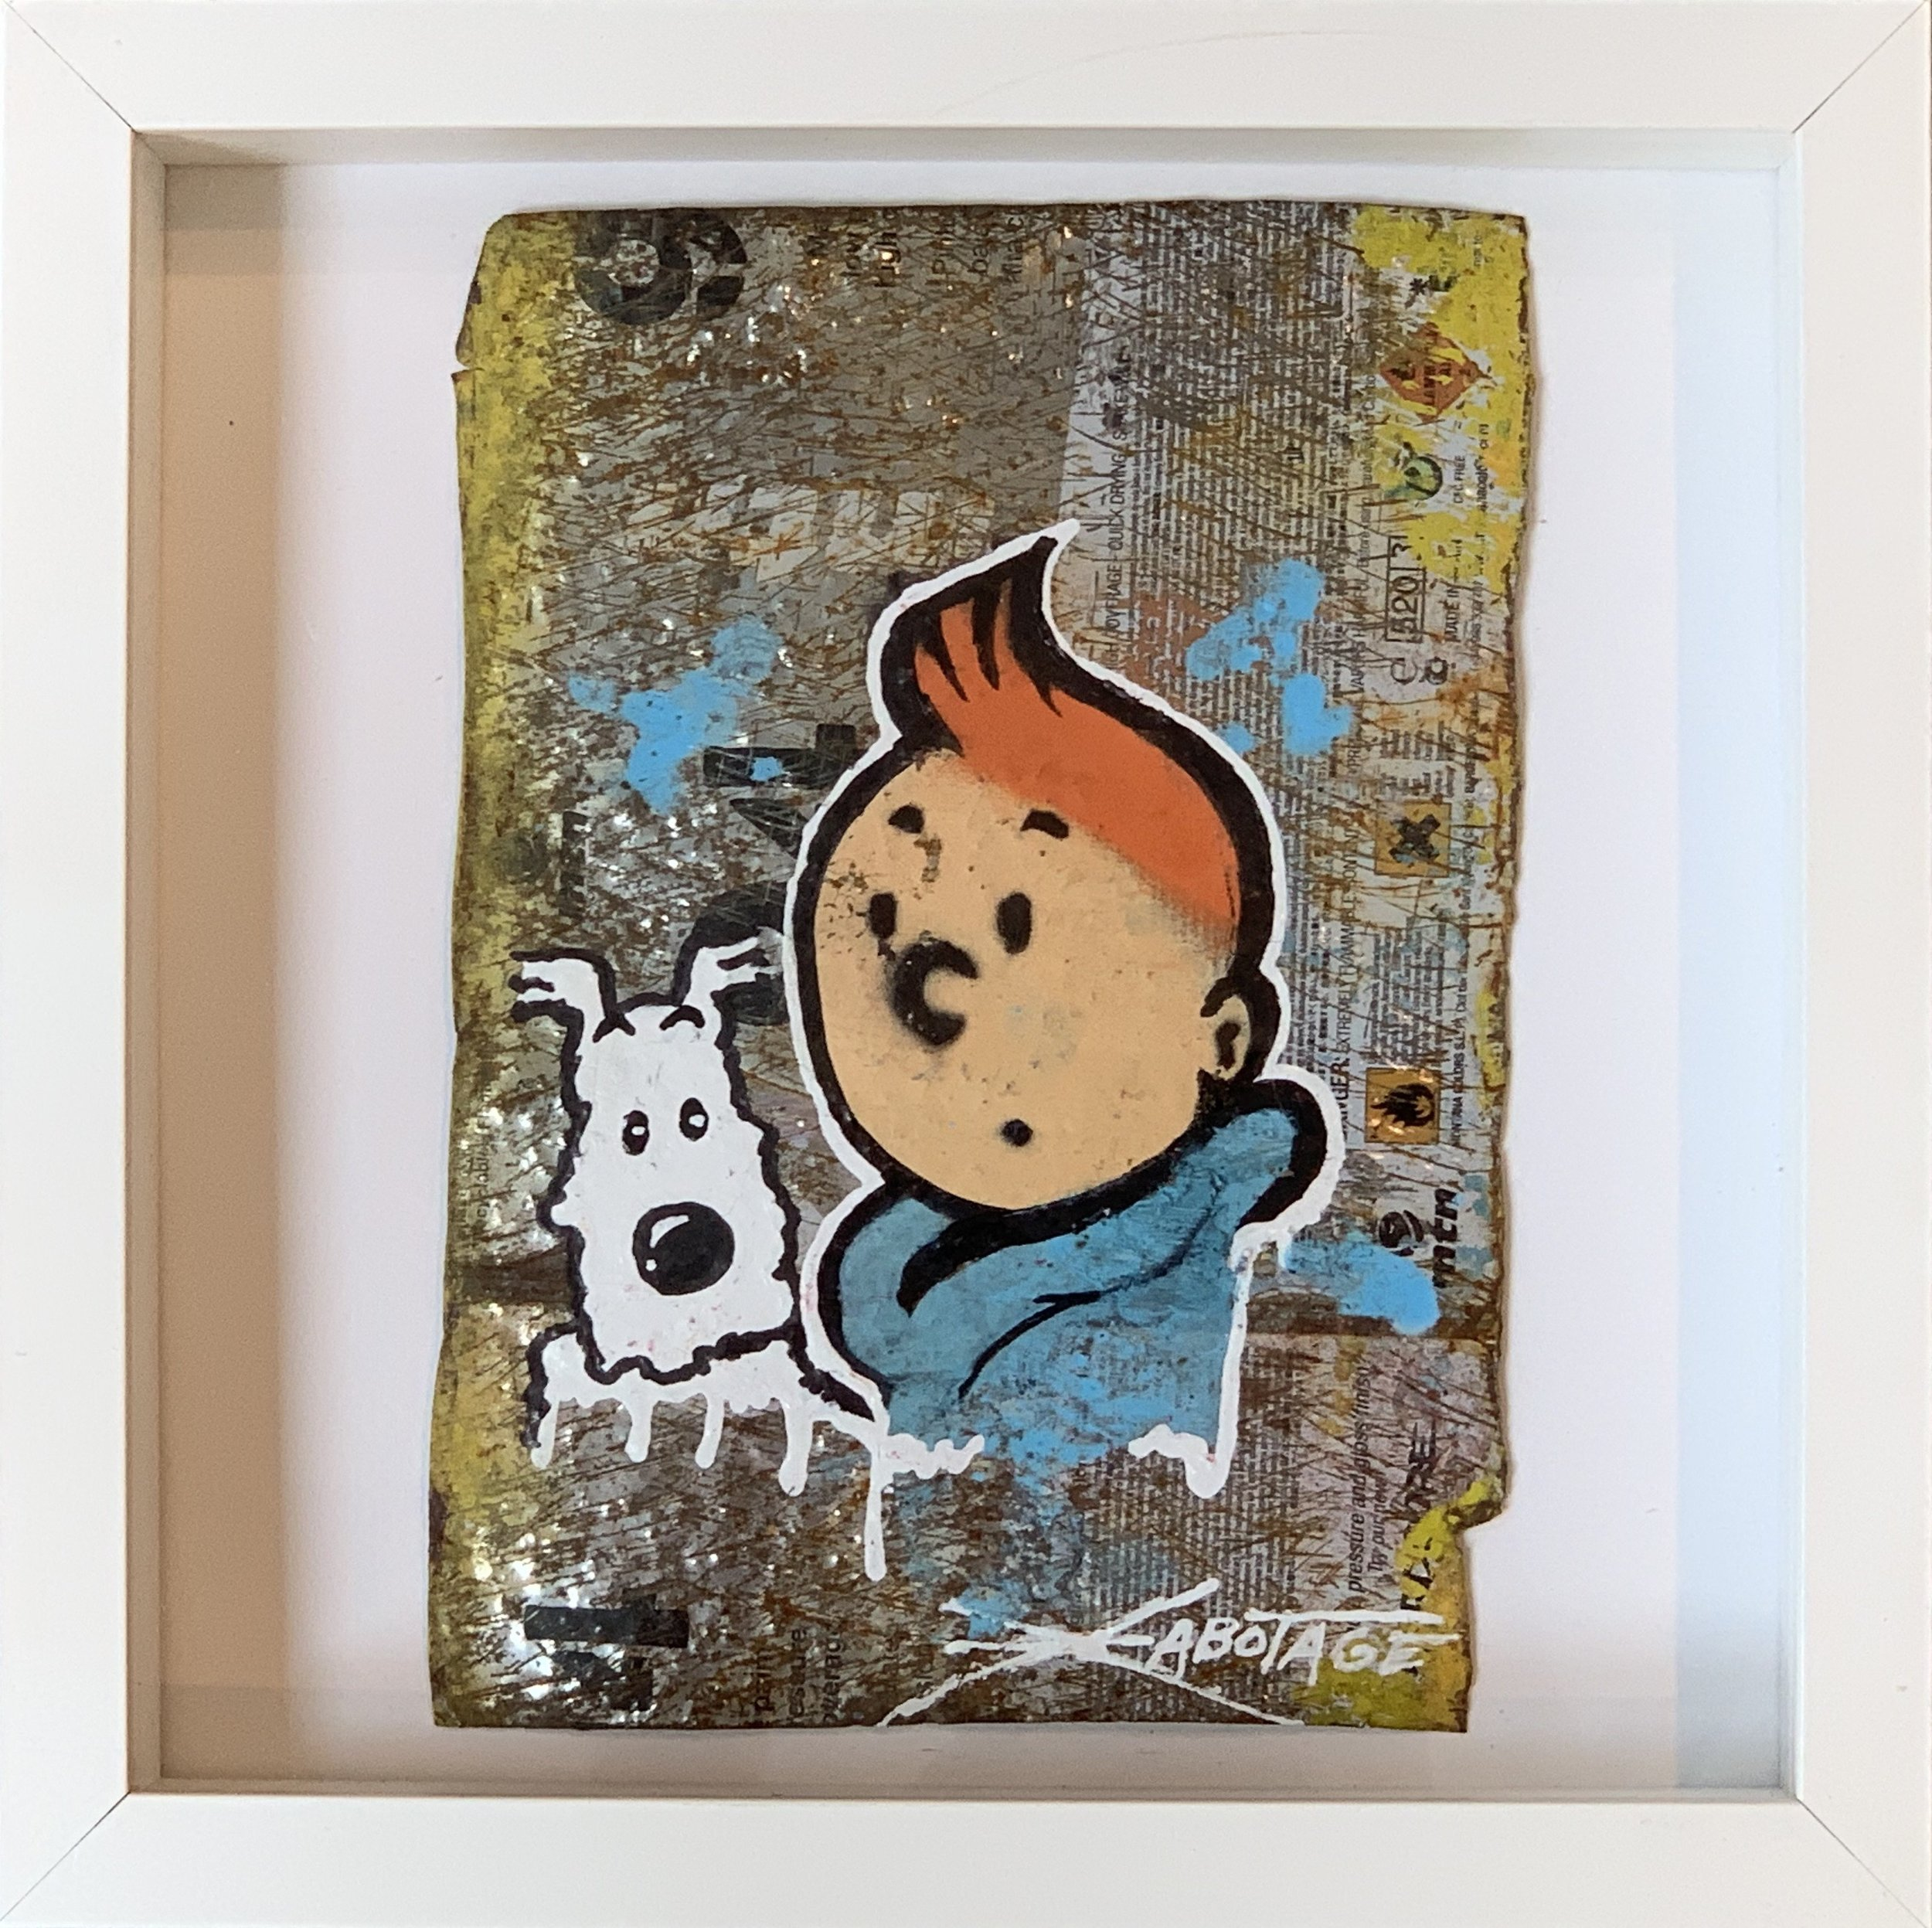 """Mini Can Can Tin Tin and Snowy"" Stencil Mixed Media Spray Paint and Graffiti Markers on deconstructed Can Background Framed 26 x 26 cm 2018"